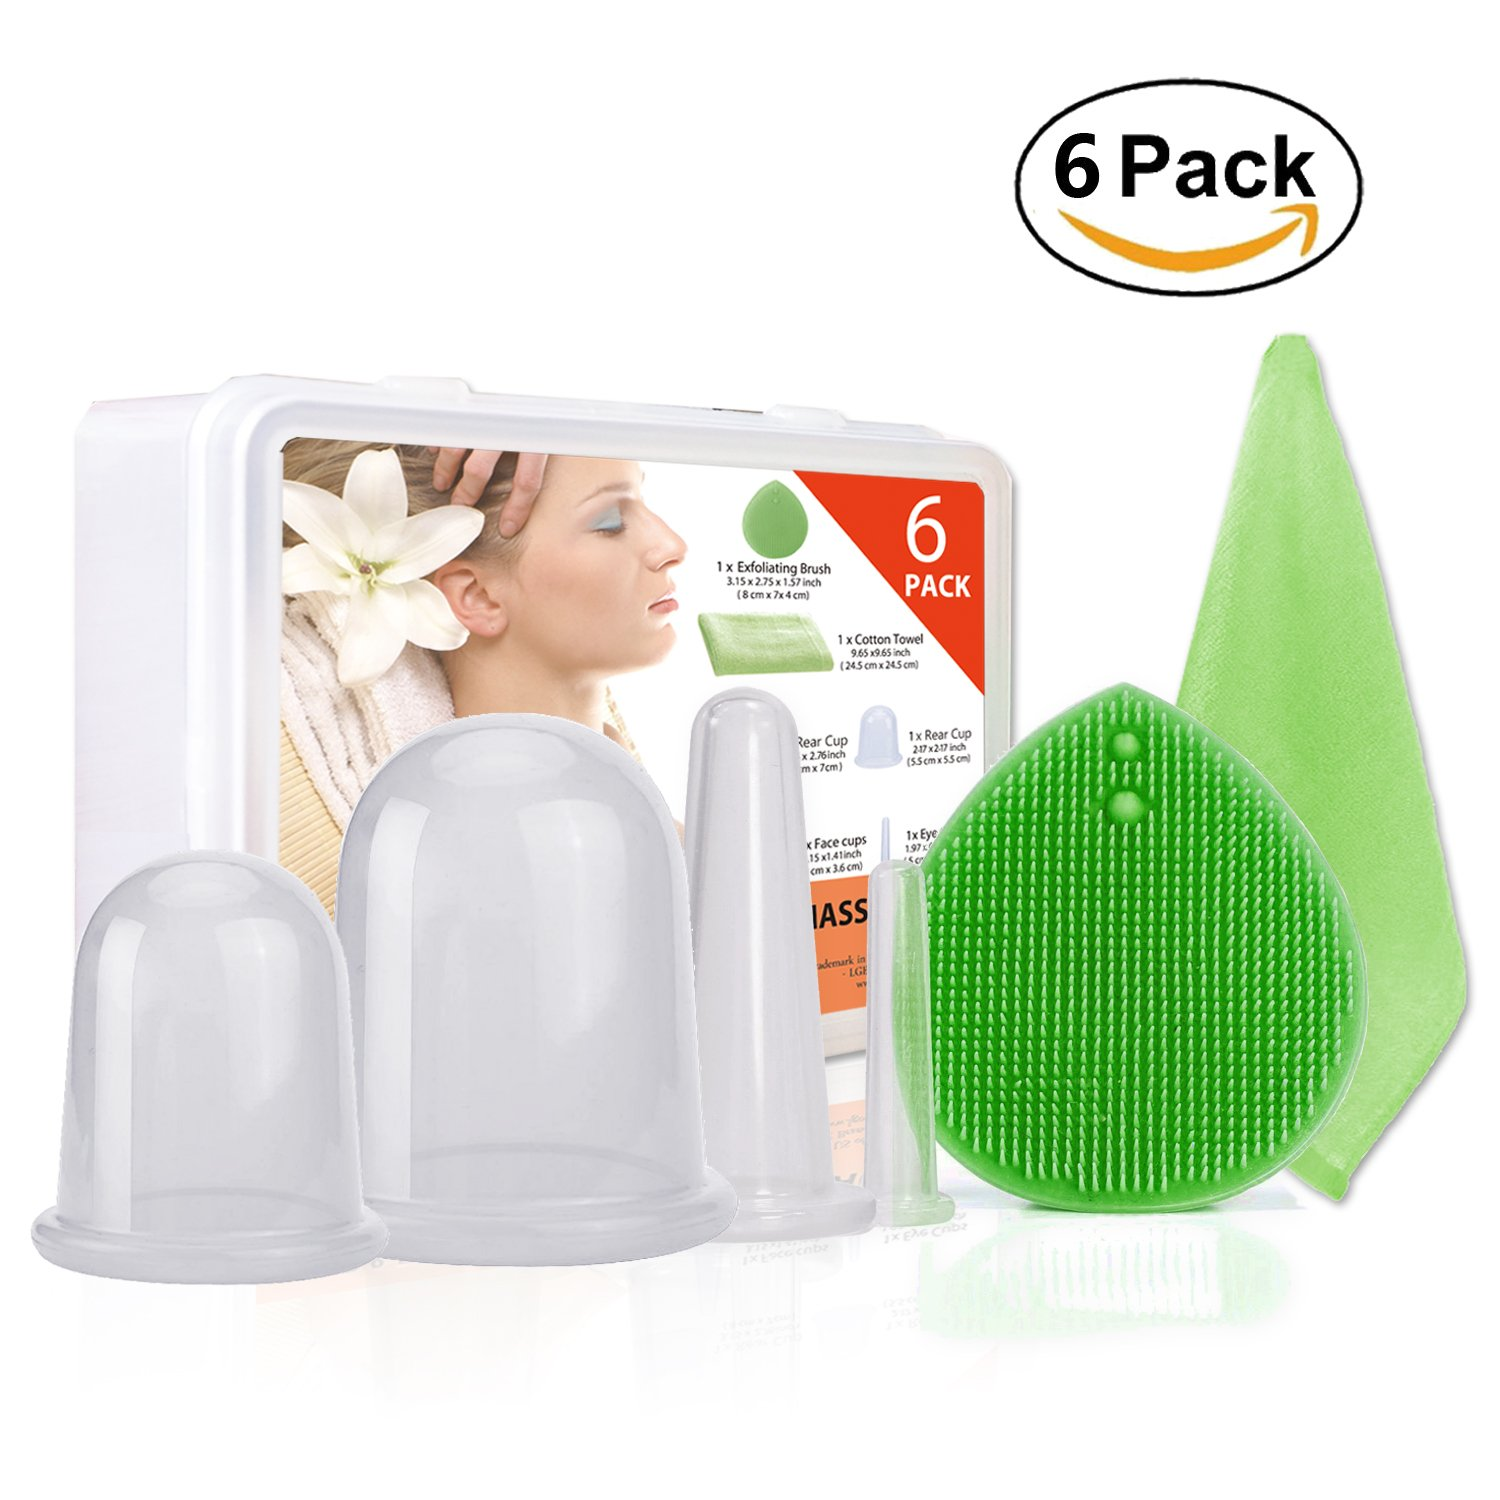 Anti-Aging Massage Cups,4pcs Silicone Massage Cups with Facial Cleaning Brush and Bamboo Towel by SWISSELITE (Image #1)